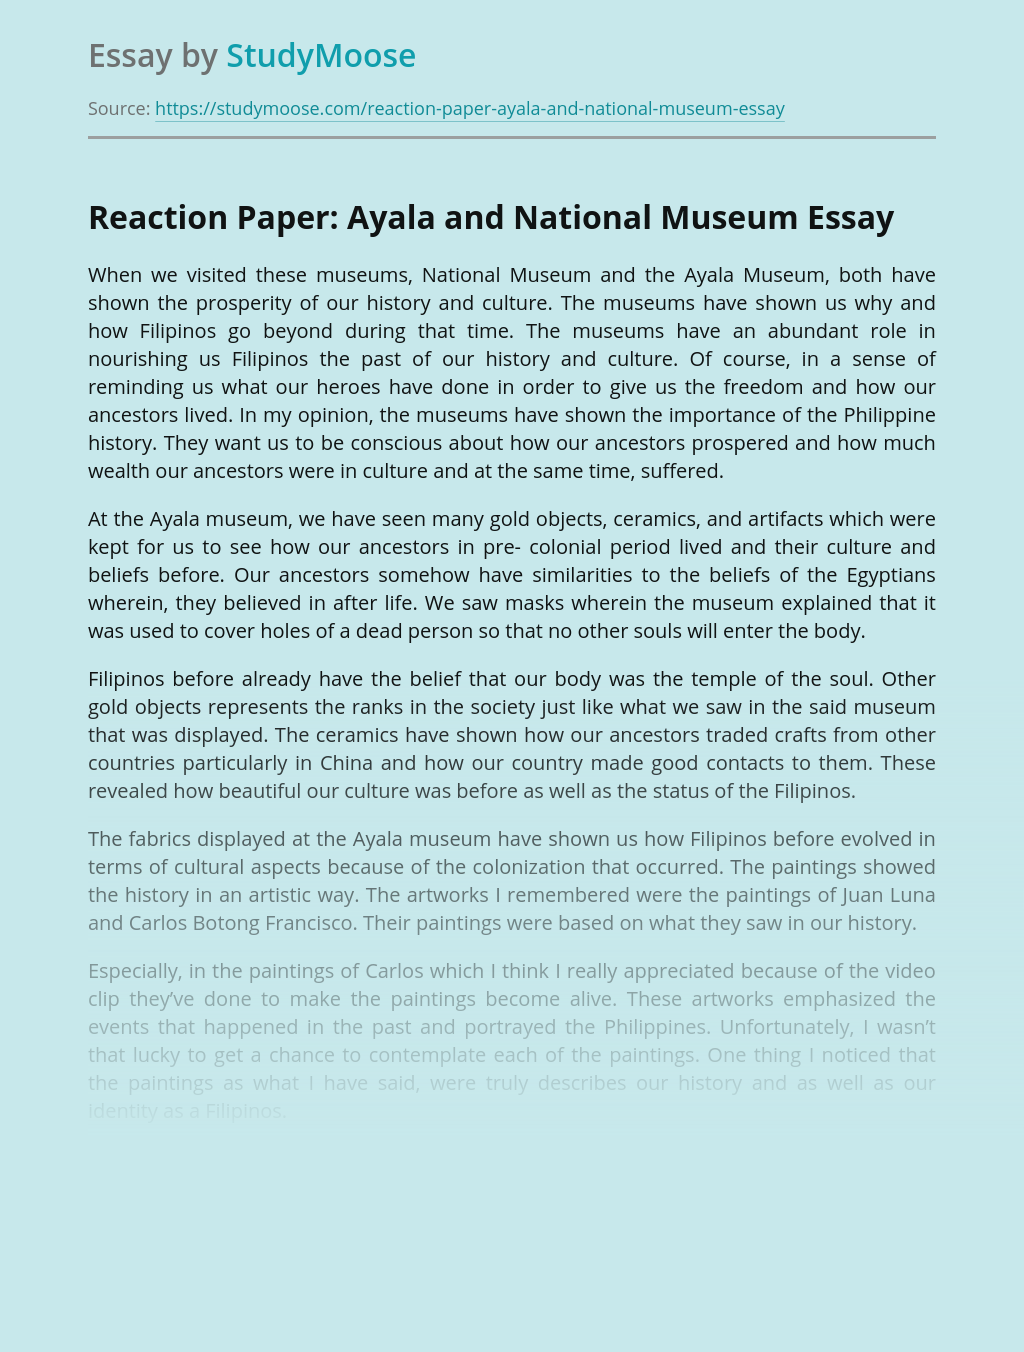 Reaction Paper: Ayala and National Museum